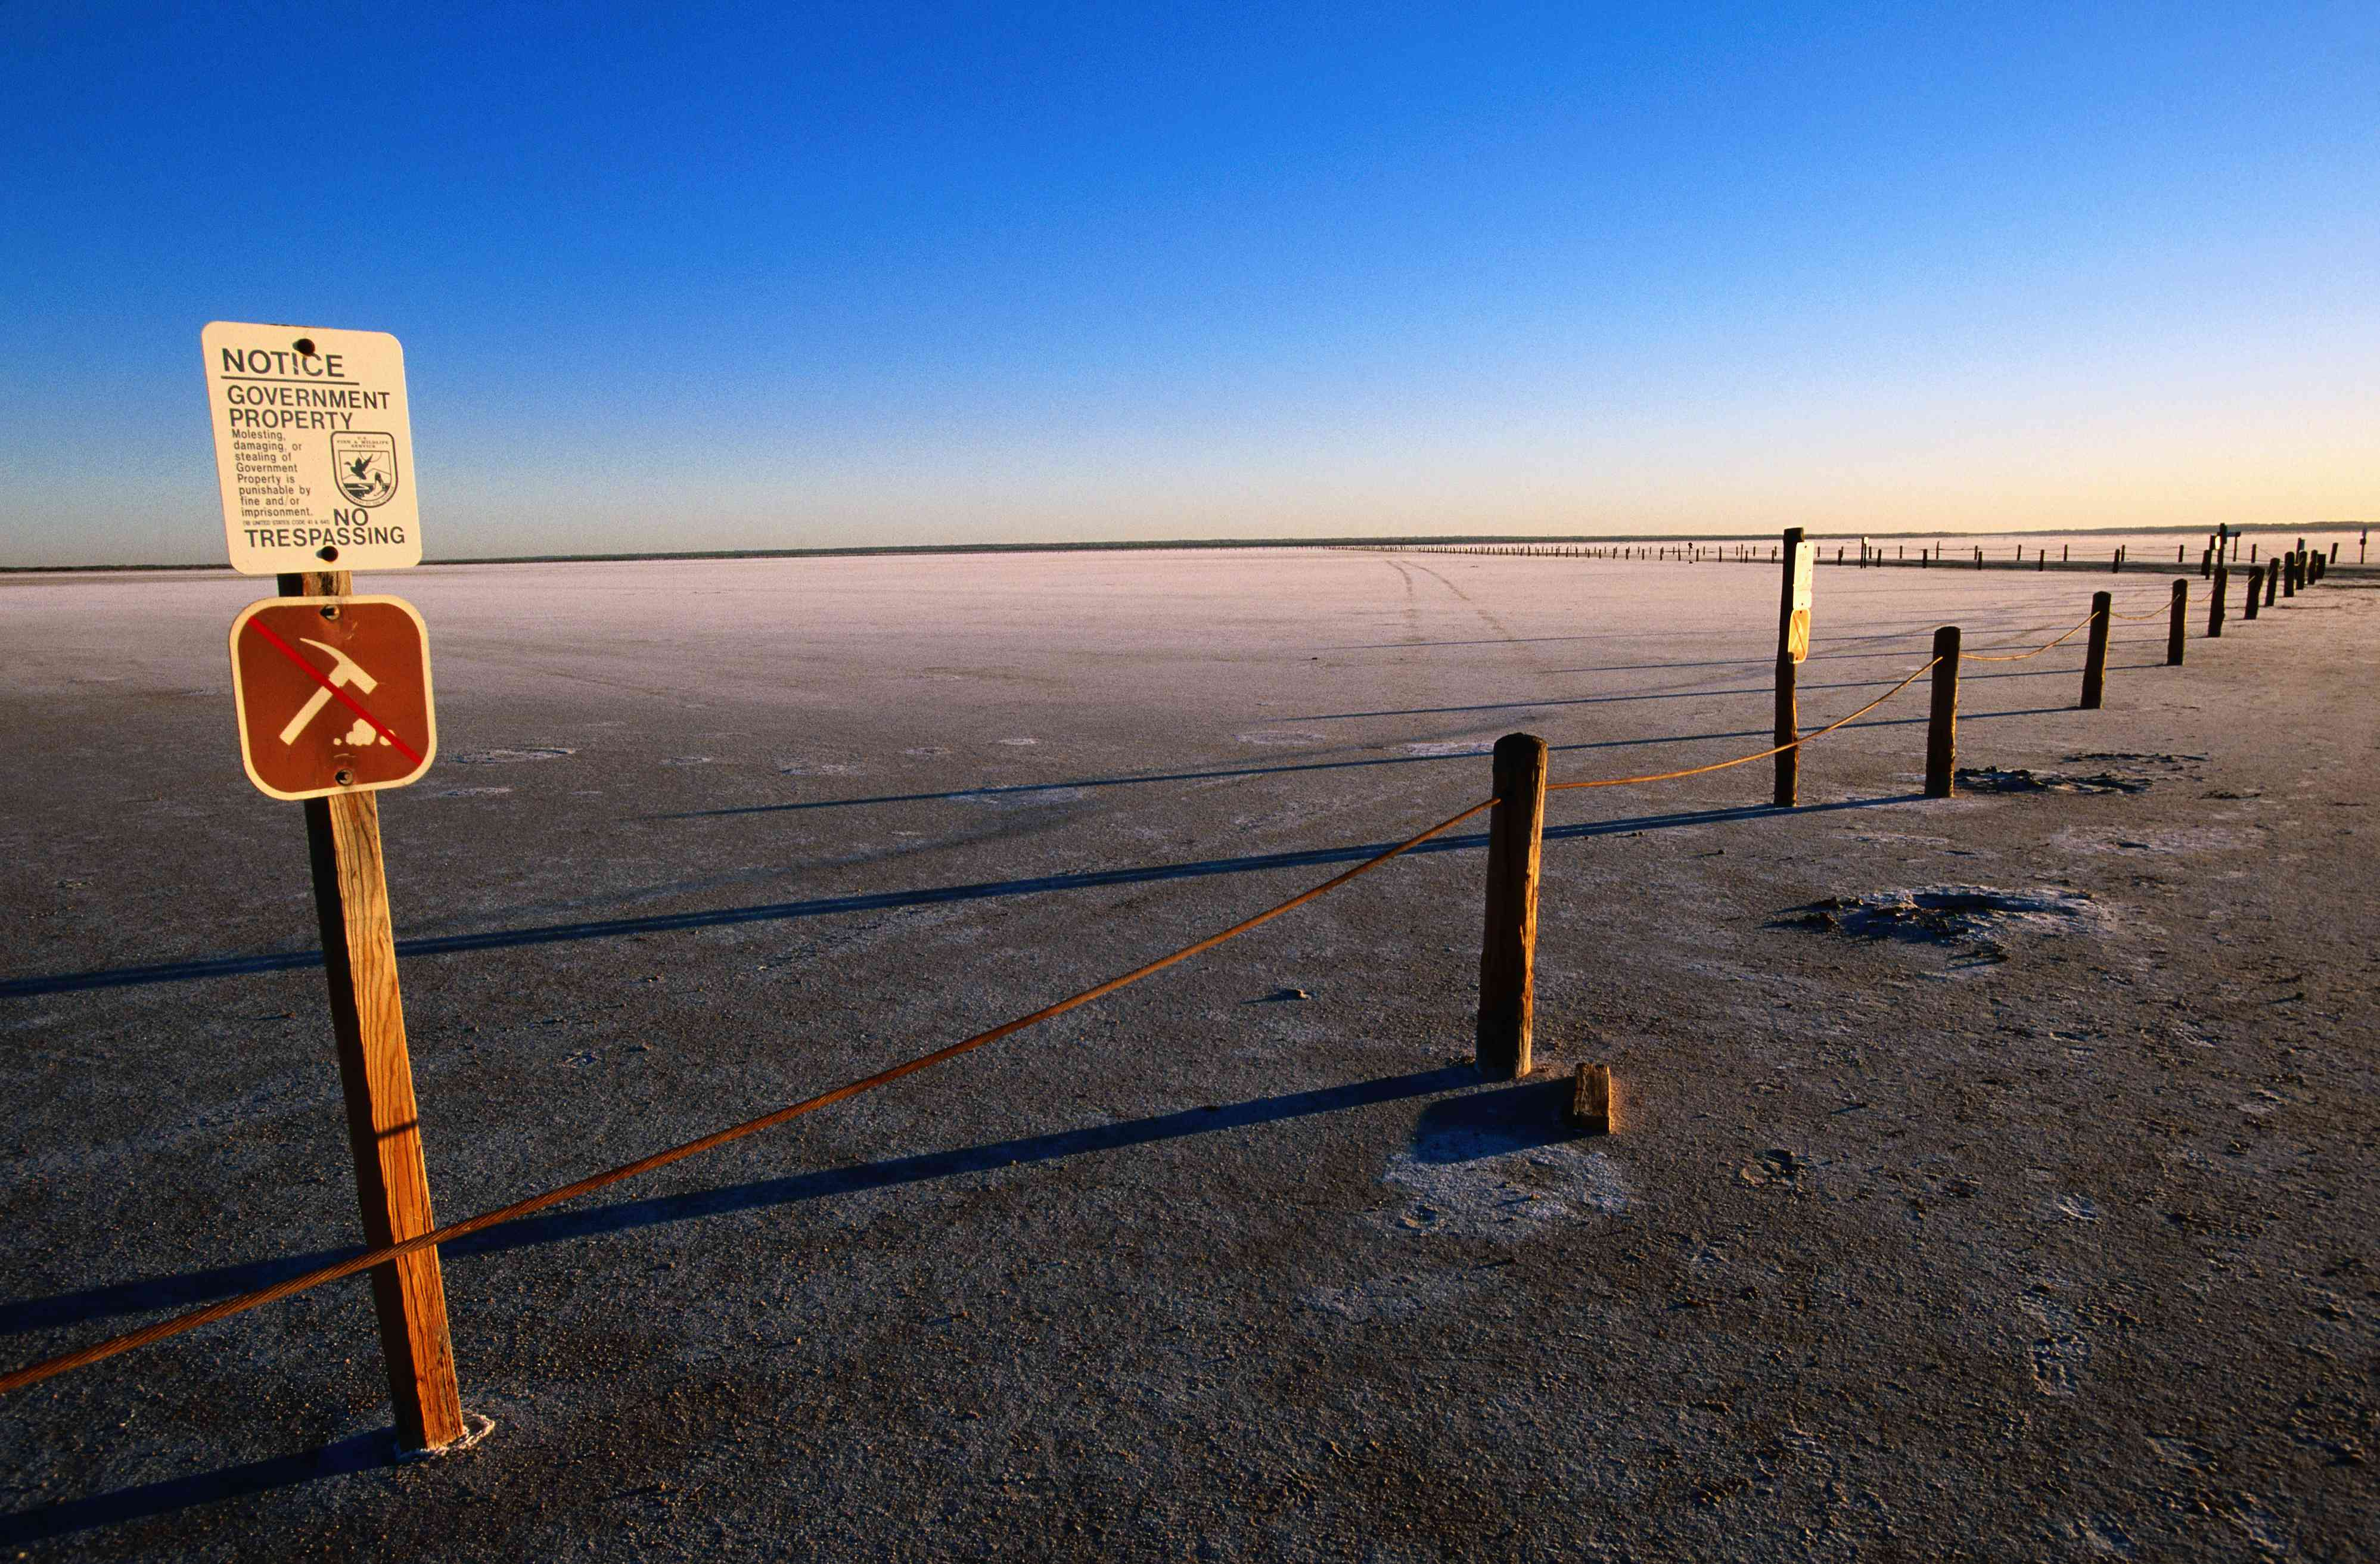 Salt flats with signs and posts.